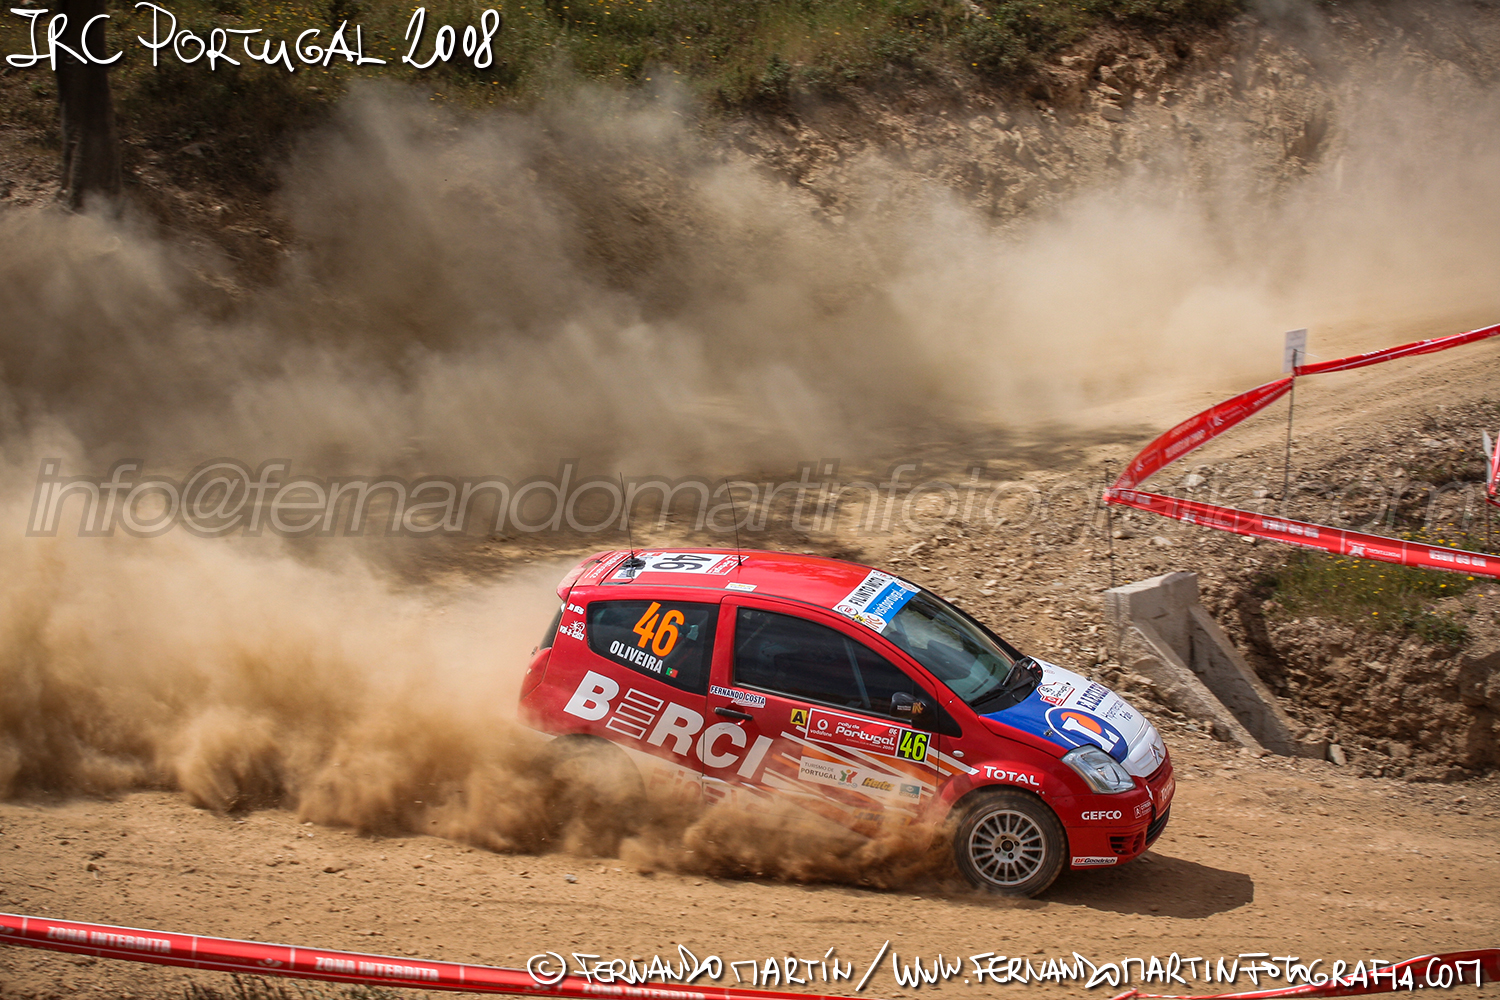 IRC Portugal 2008